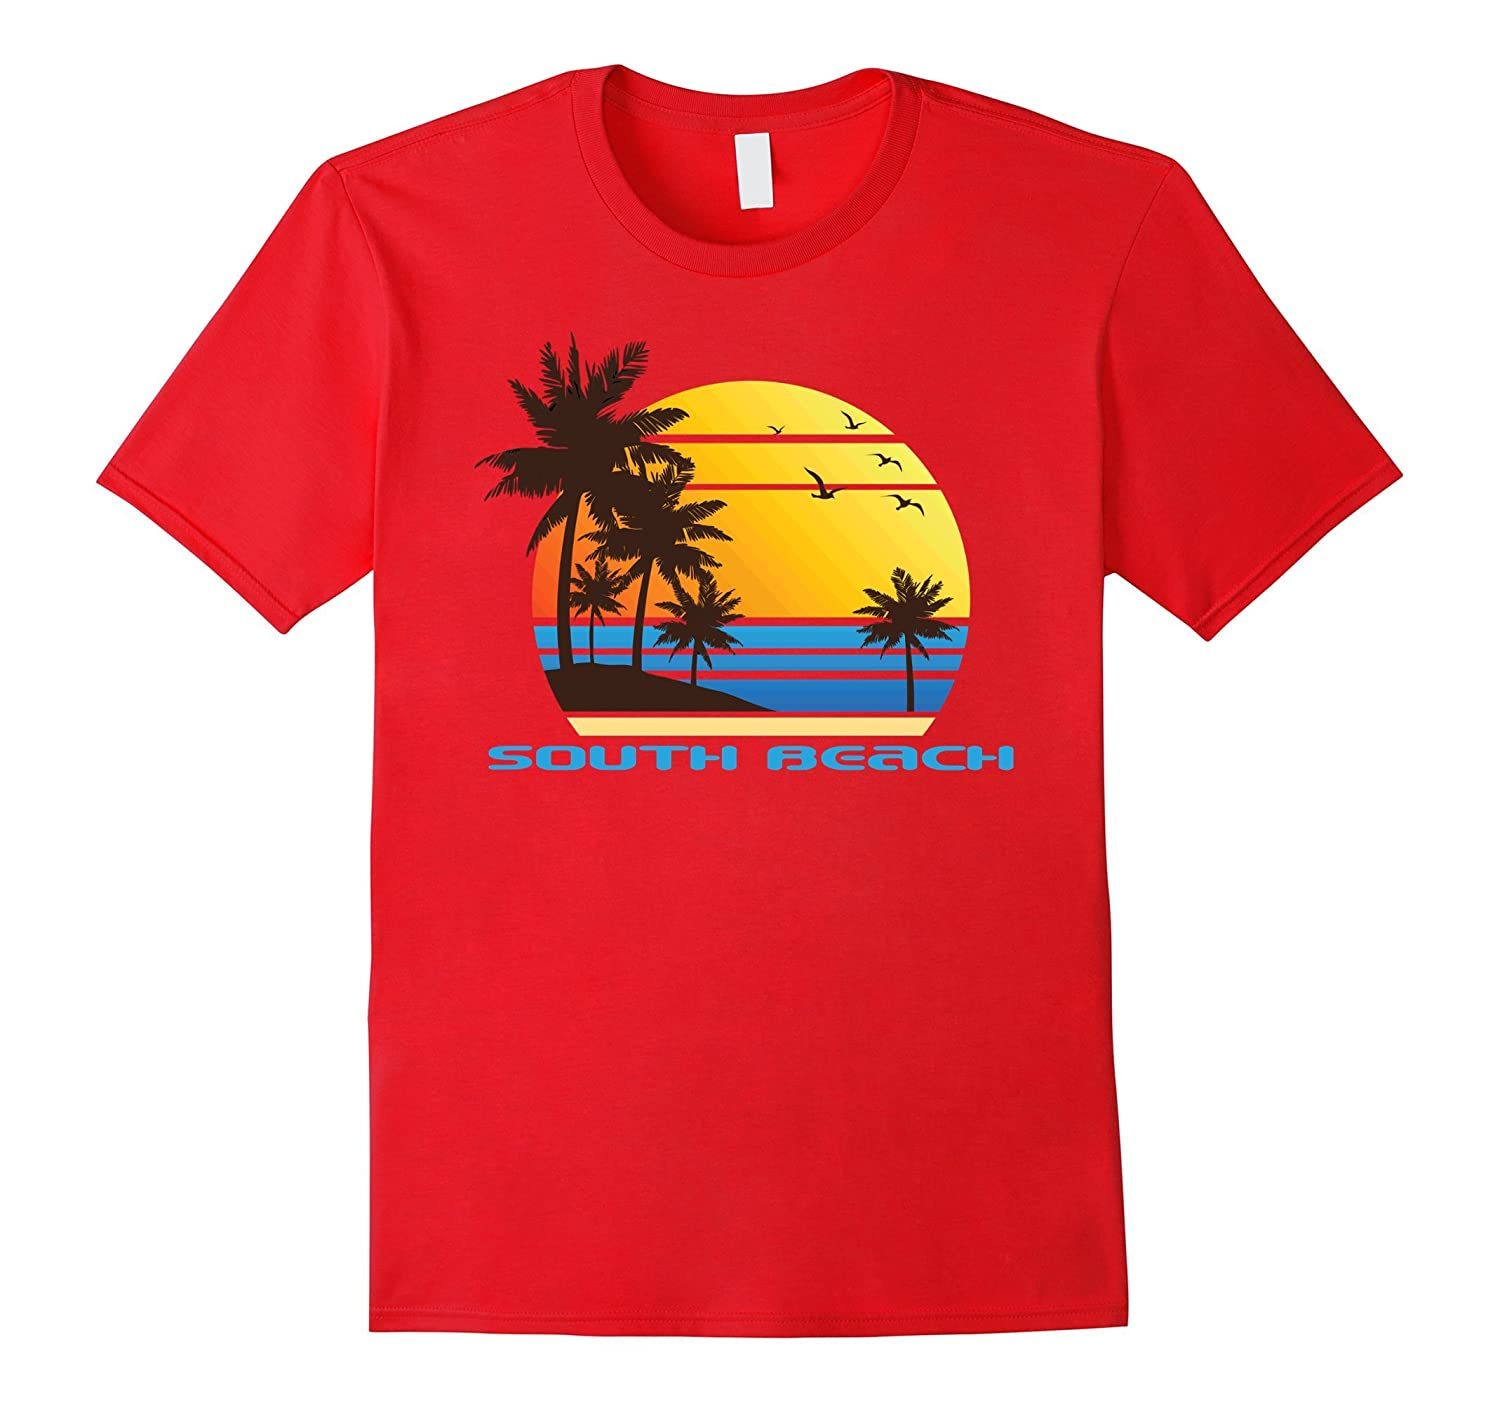 South Beach Surf T-Shirt Summer Sun Fun Ski Tee Shirt-T-Shirt